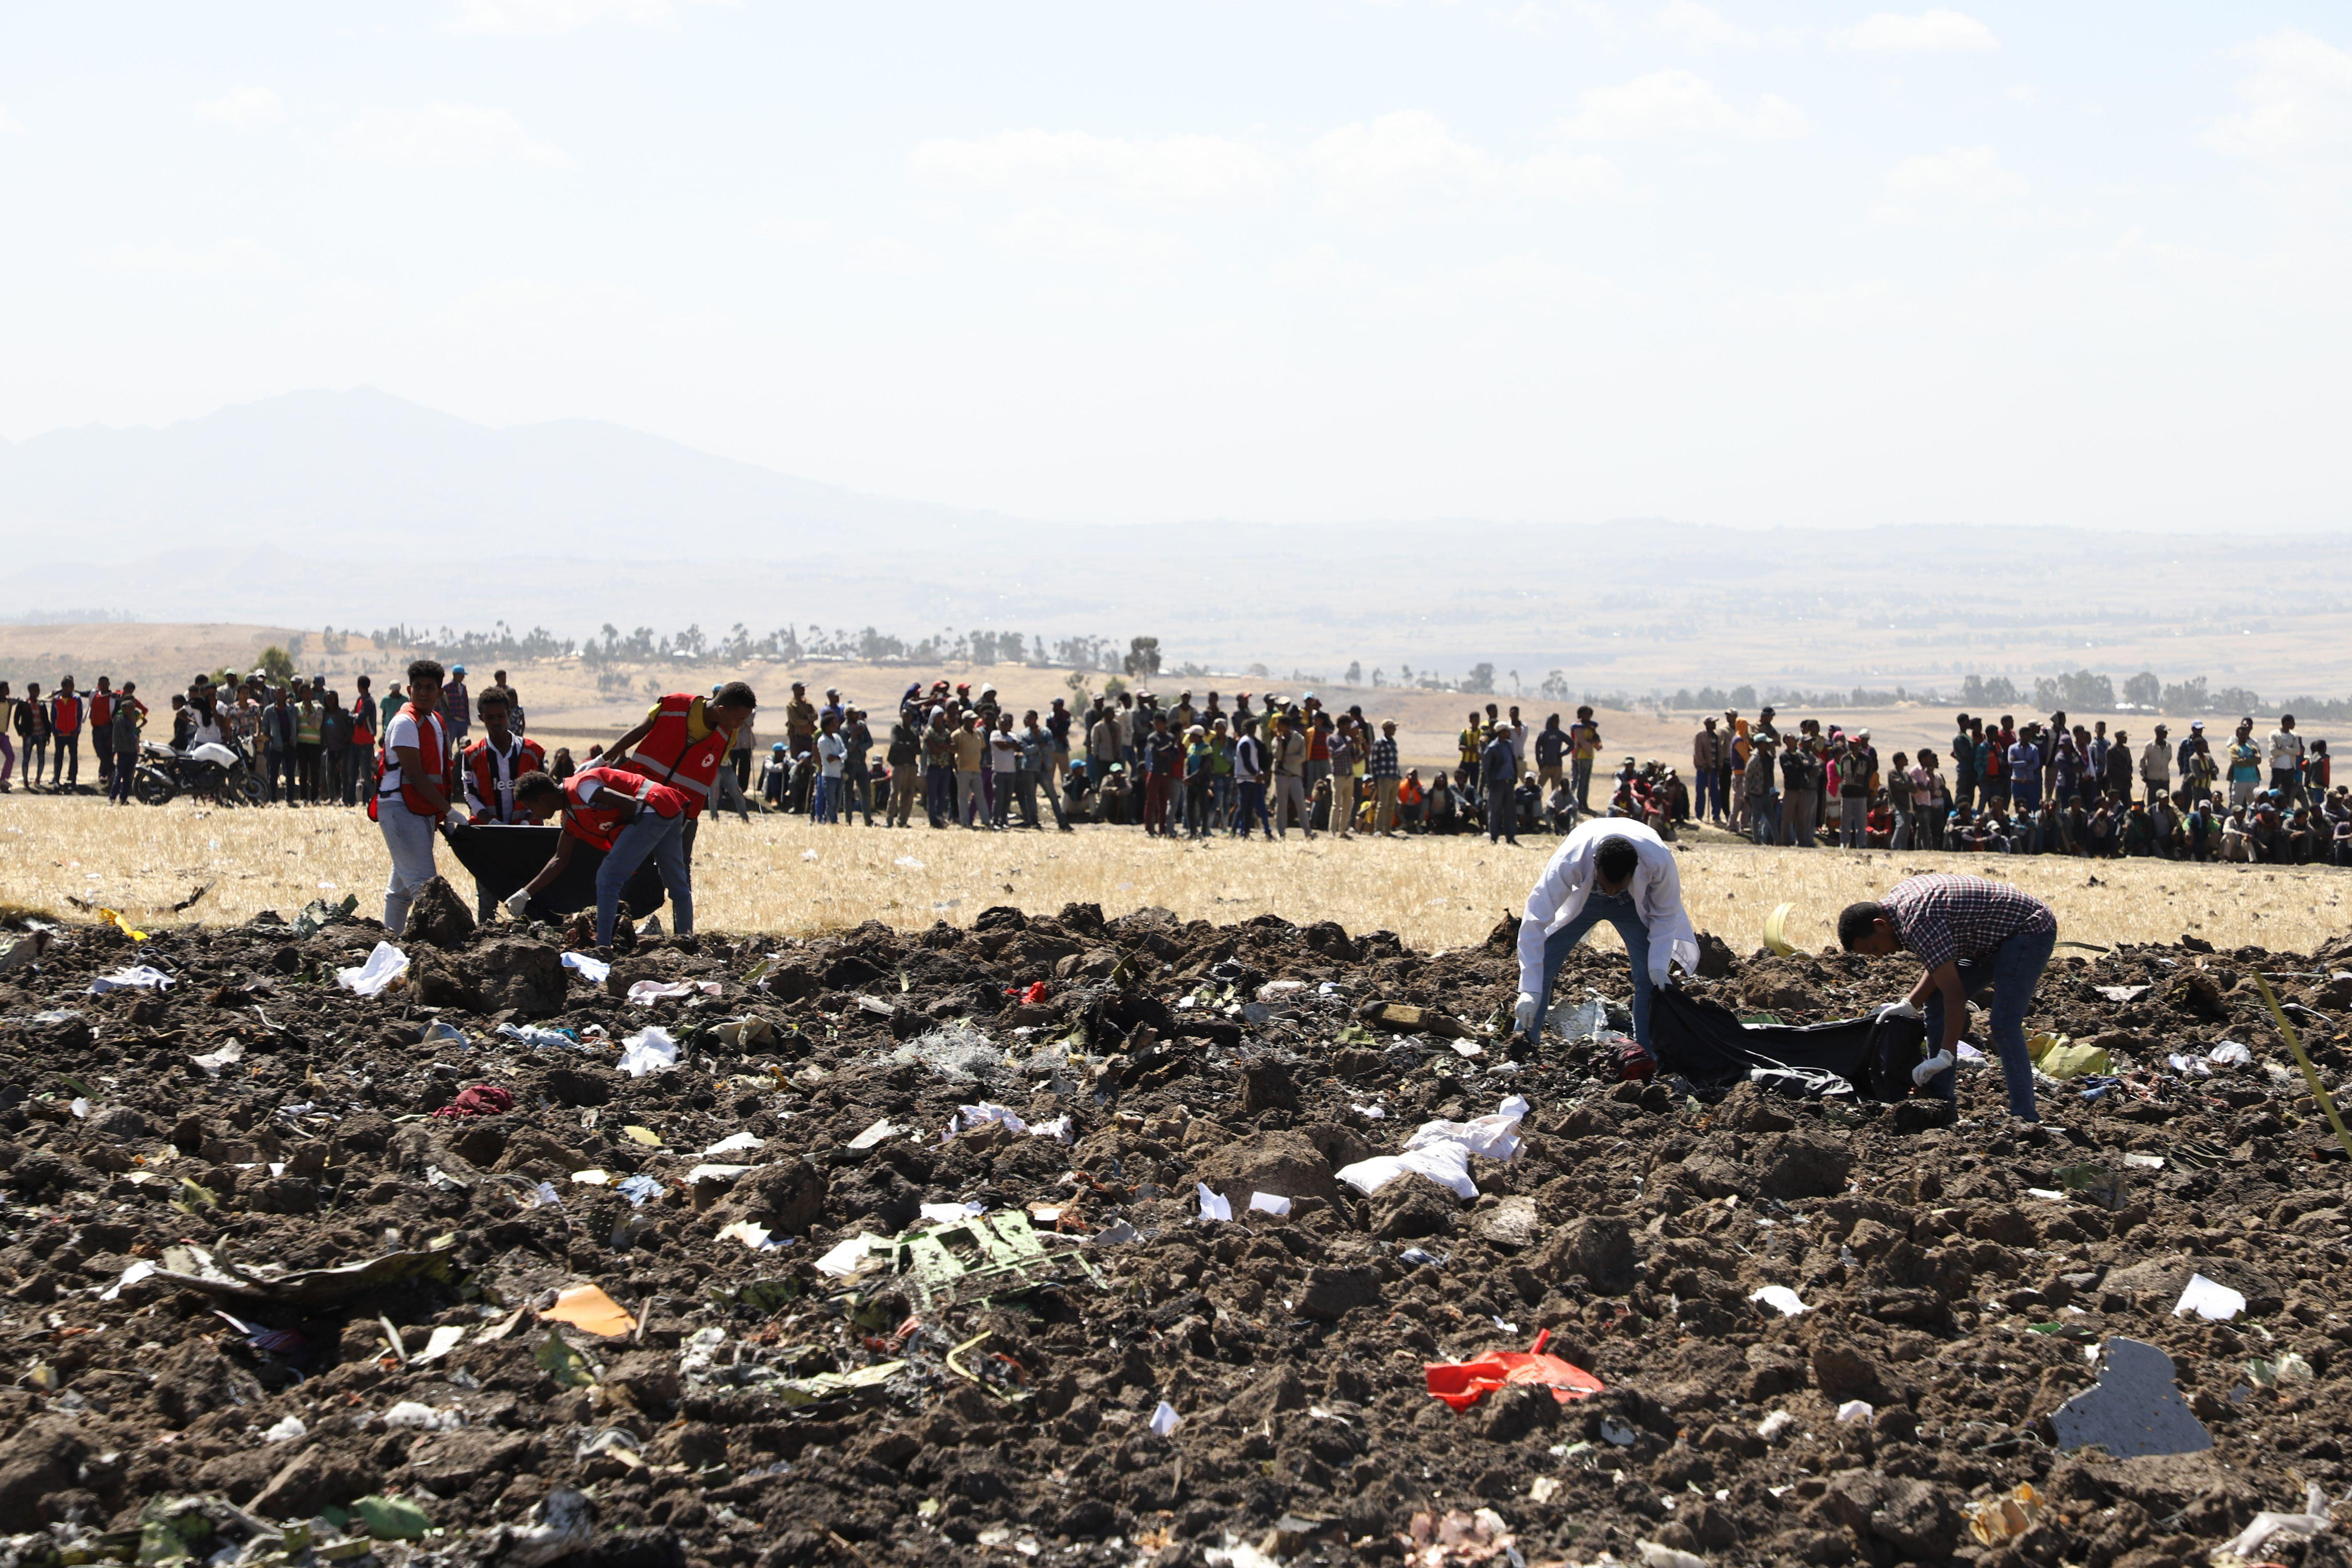 Rescue team collect remains of bodies amid debris at the crash site of Ethiopia Airlines near Bishoftu, a town southeast of Addis Ababa, Ethiopia, on March 10, 2019.